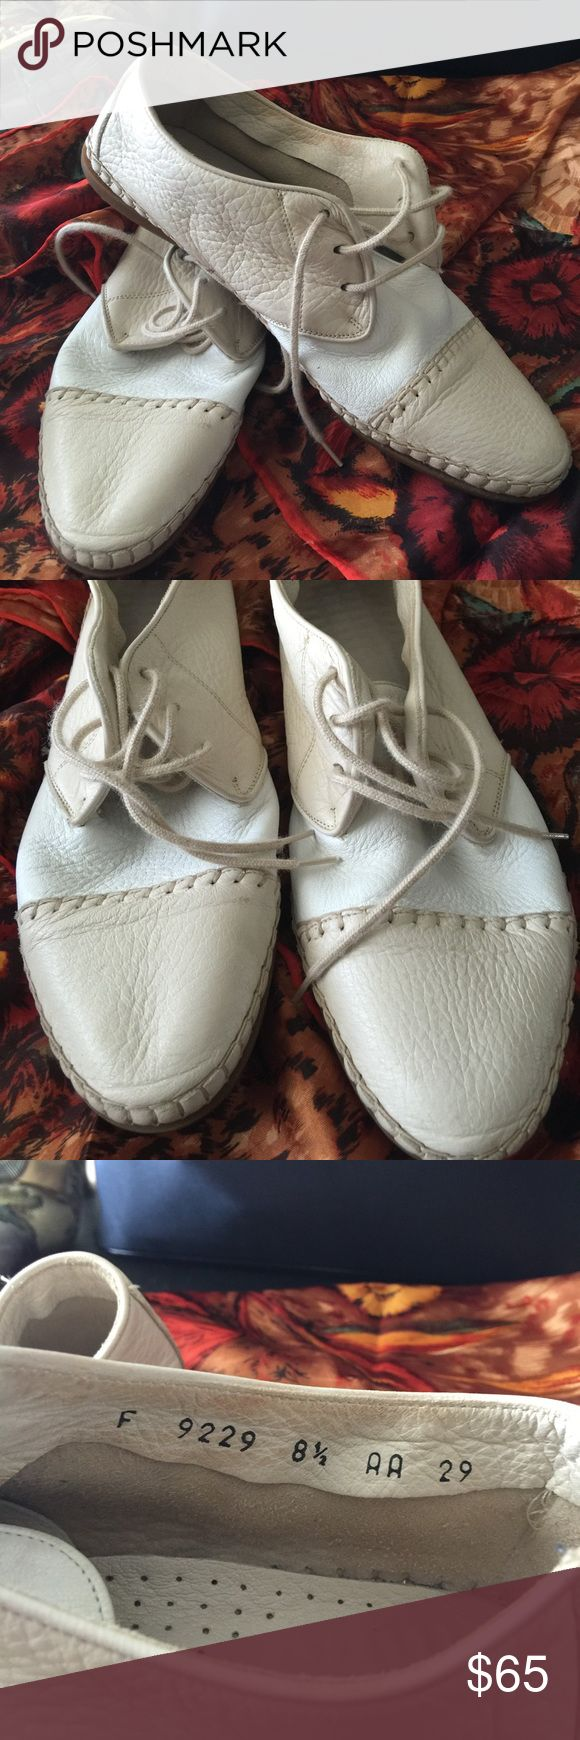 Must have adorable Cole Haan oxfords These yummy shoes are like being barefoot. The leather is so buttery soft. They are two tone white and soft putty/tan in color. The size is marked 8.5 AA. I believe they run substantially small though. I wear a 6.5 and i could wear them but probably best for a 7. Made in Italy. Cole Haan Shoes